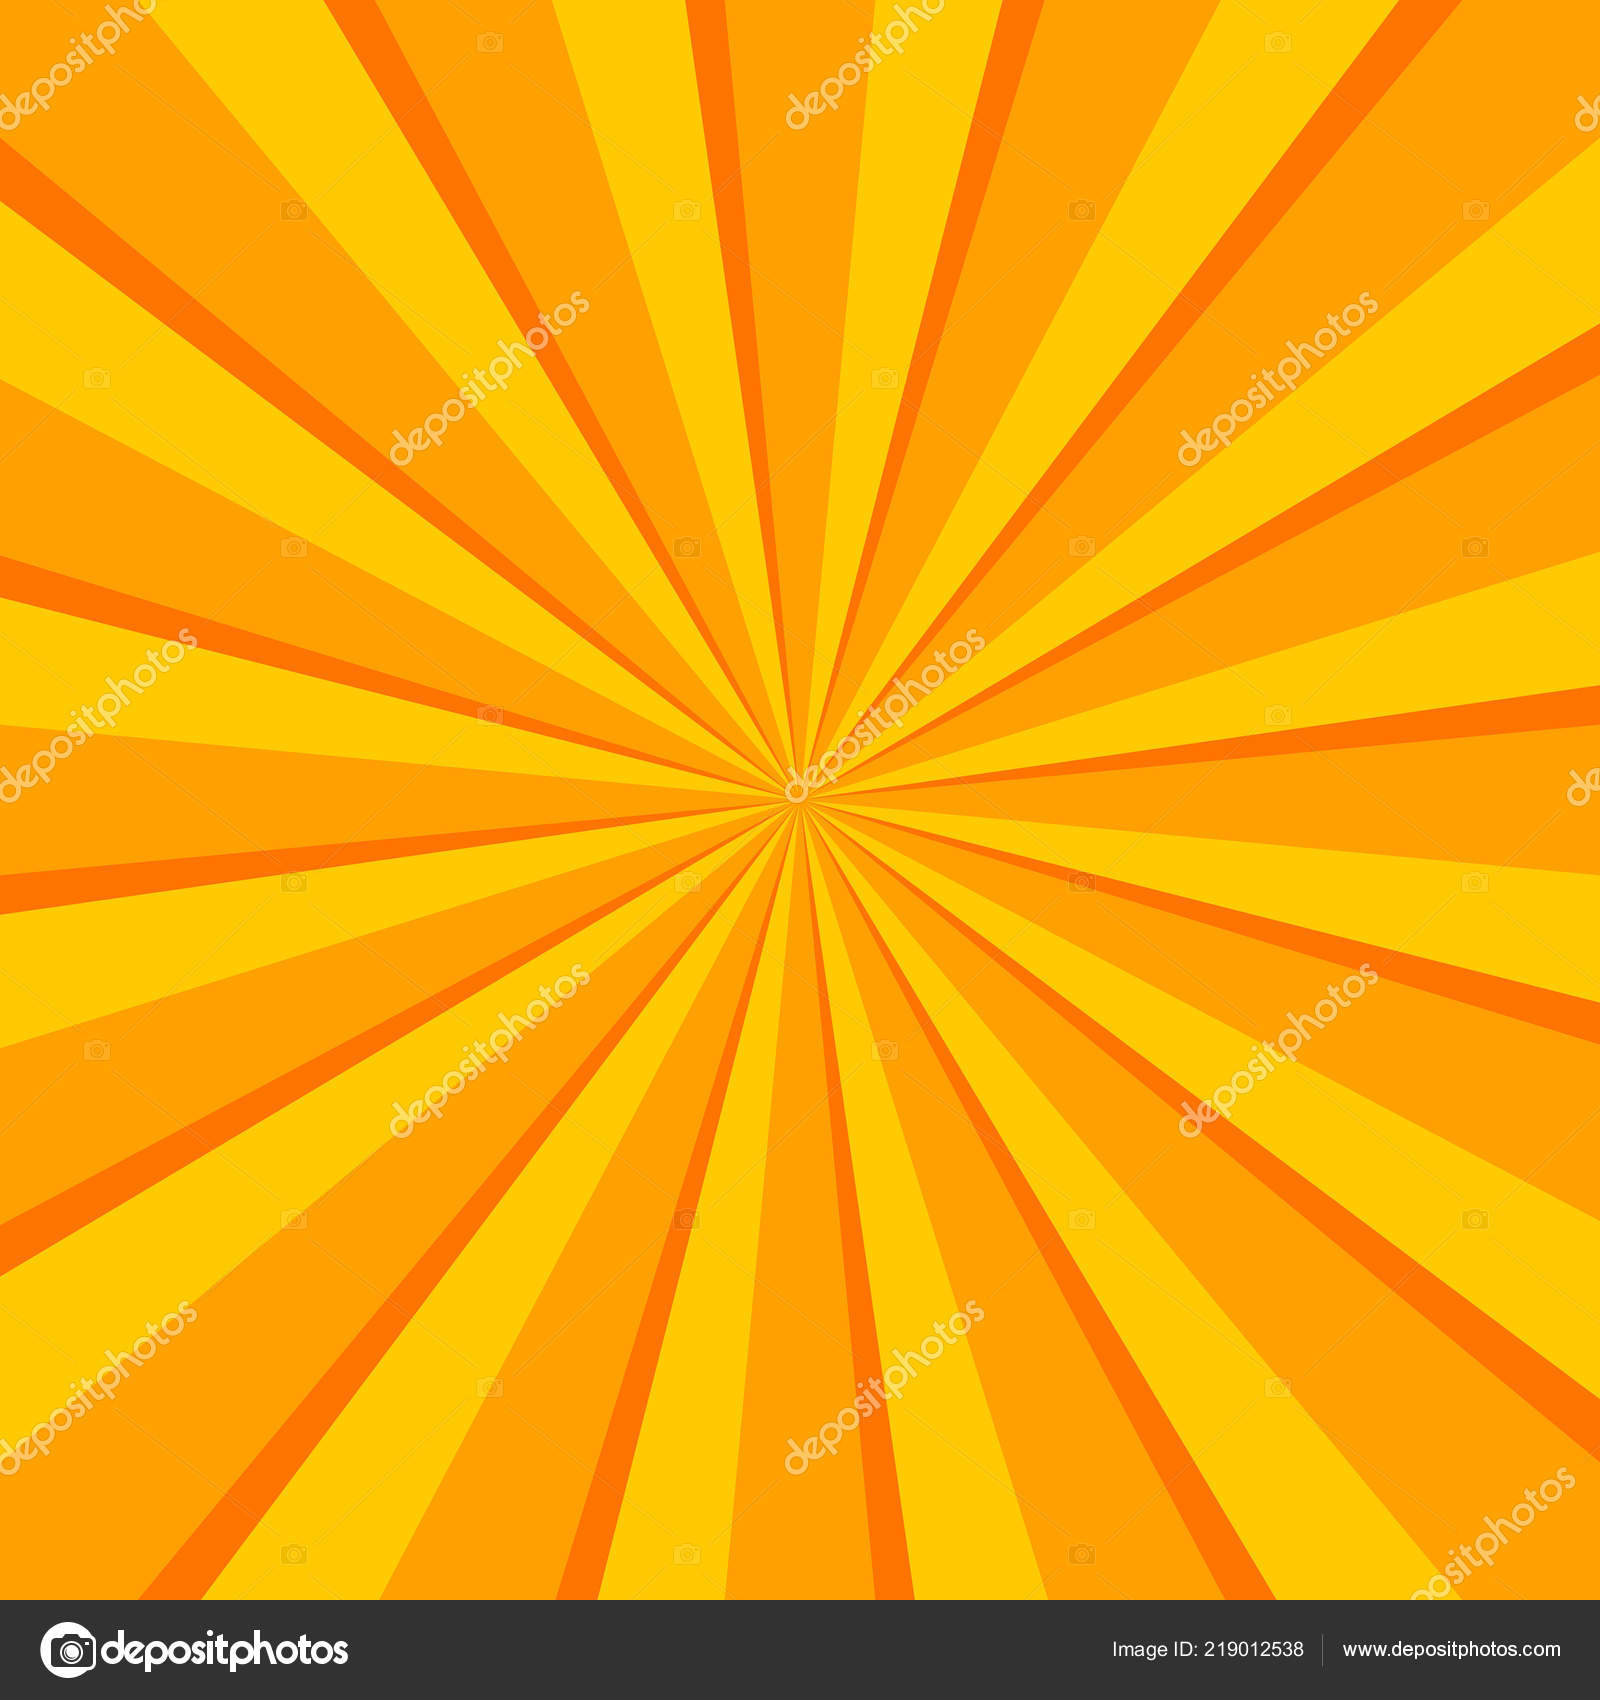 Rays Background Illustration For Your Bright Beams Design